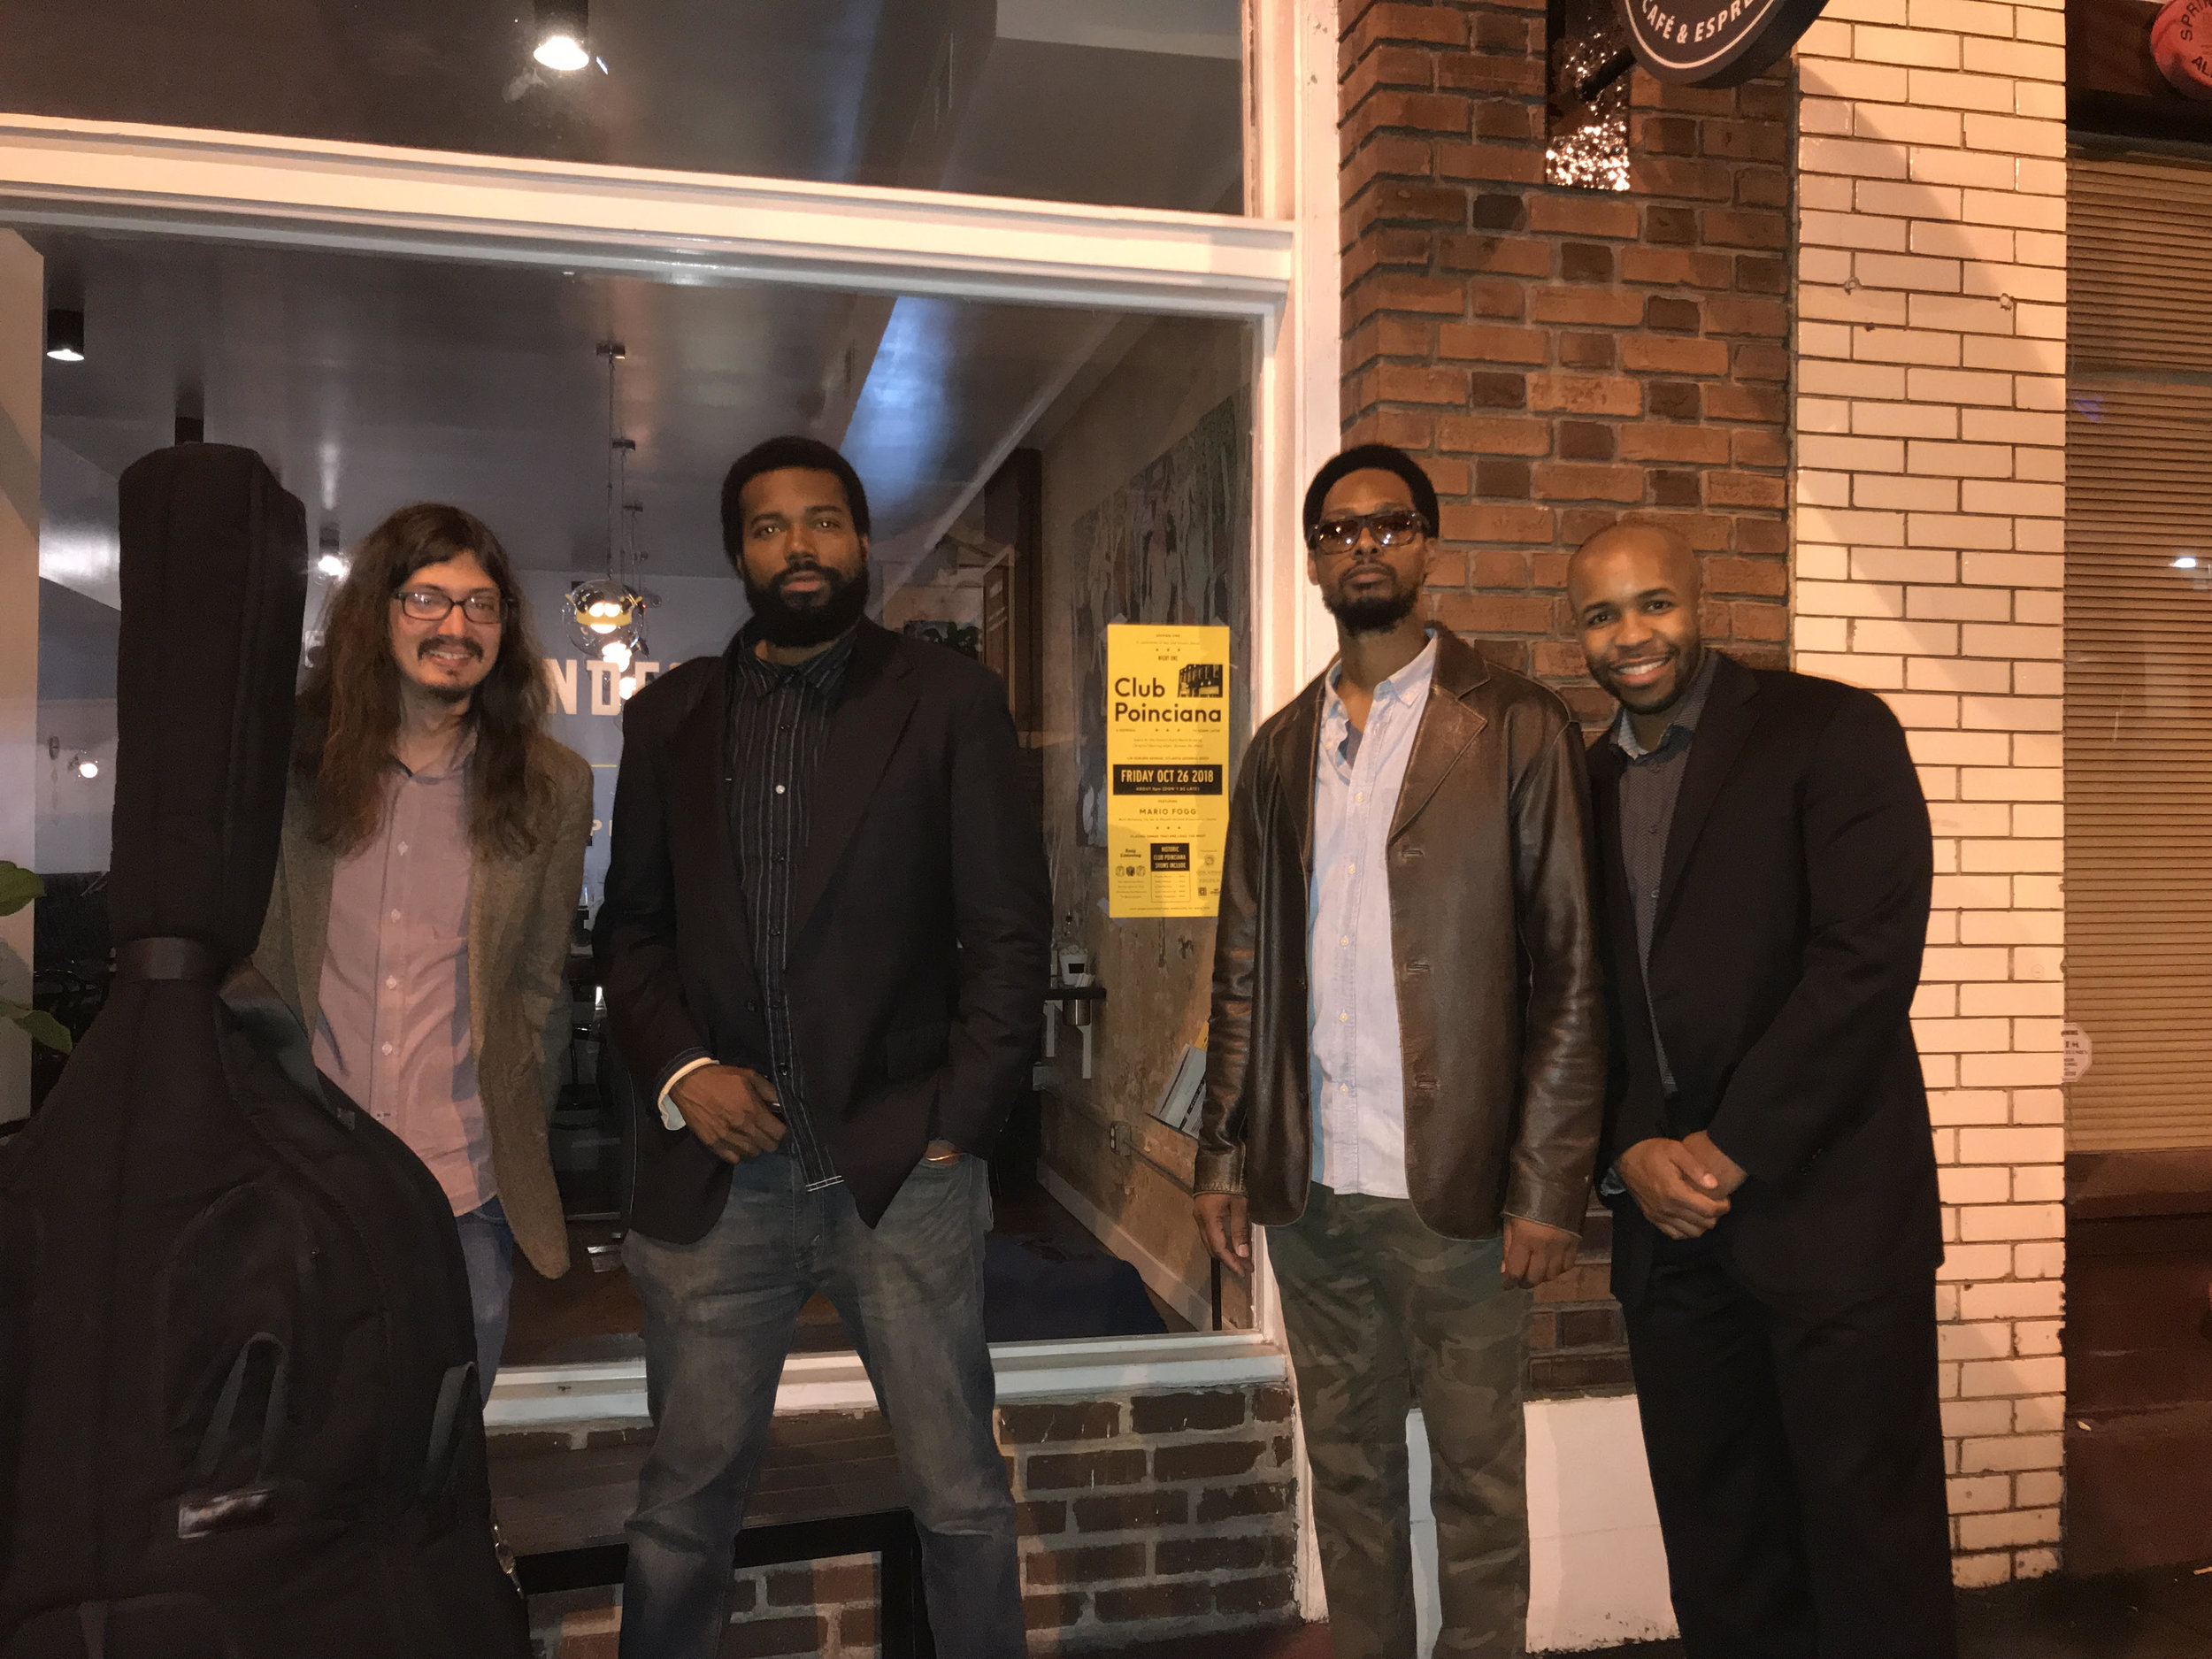 MFQ (The Mario Fogg Quartet) after performing for the 74th opening date anniversary of Club Poinciana on the historic Sweet Auburn Ave in Atlanta, Ga sponsored by  Constellations Atlanta , and  Proper Atl !